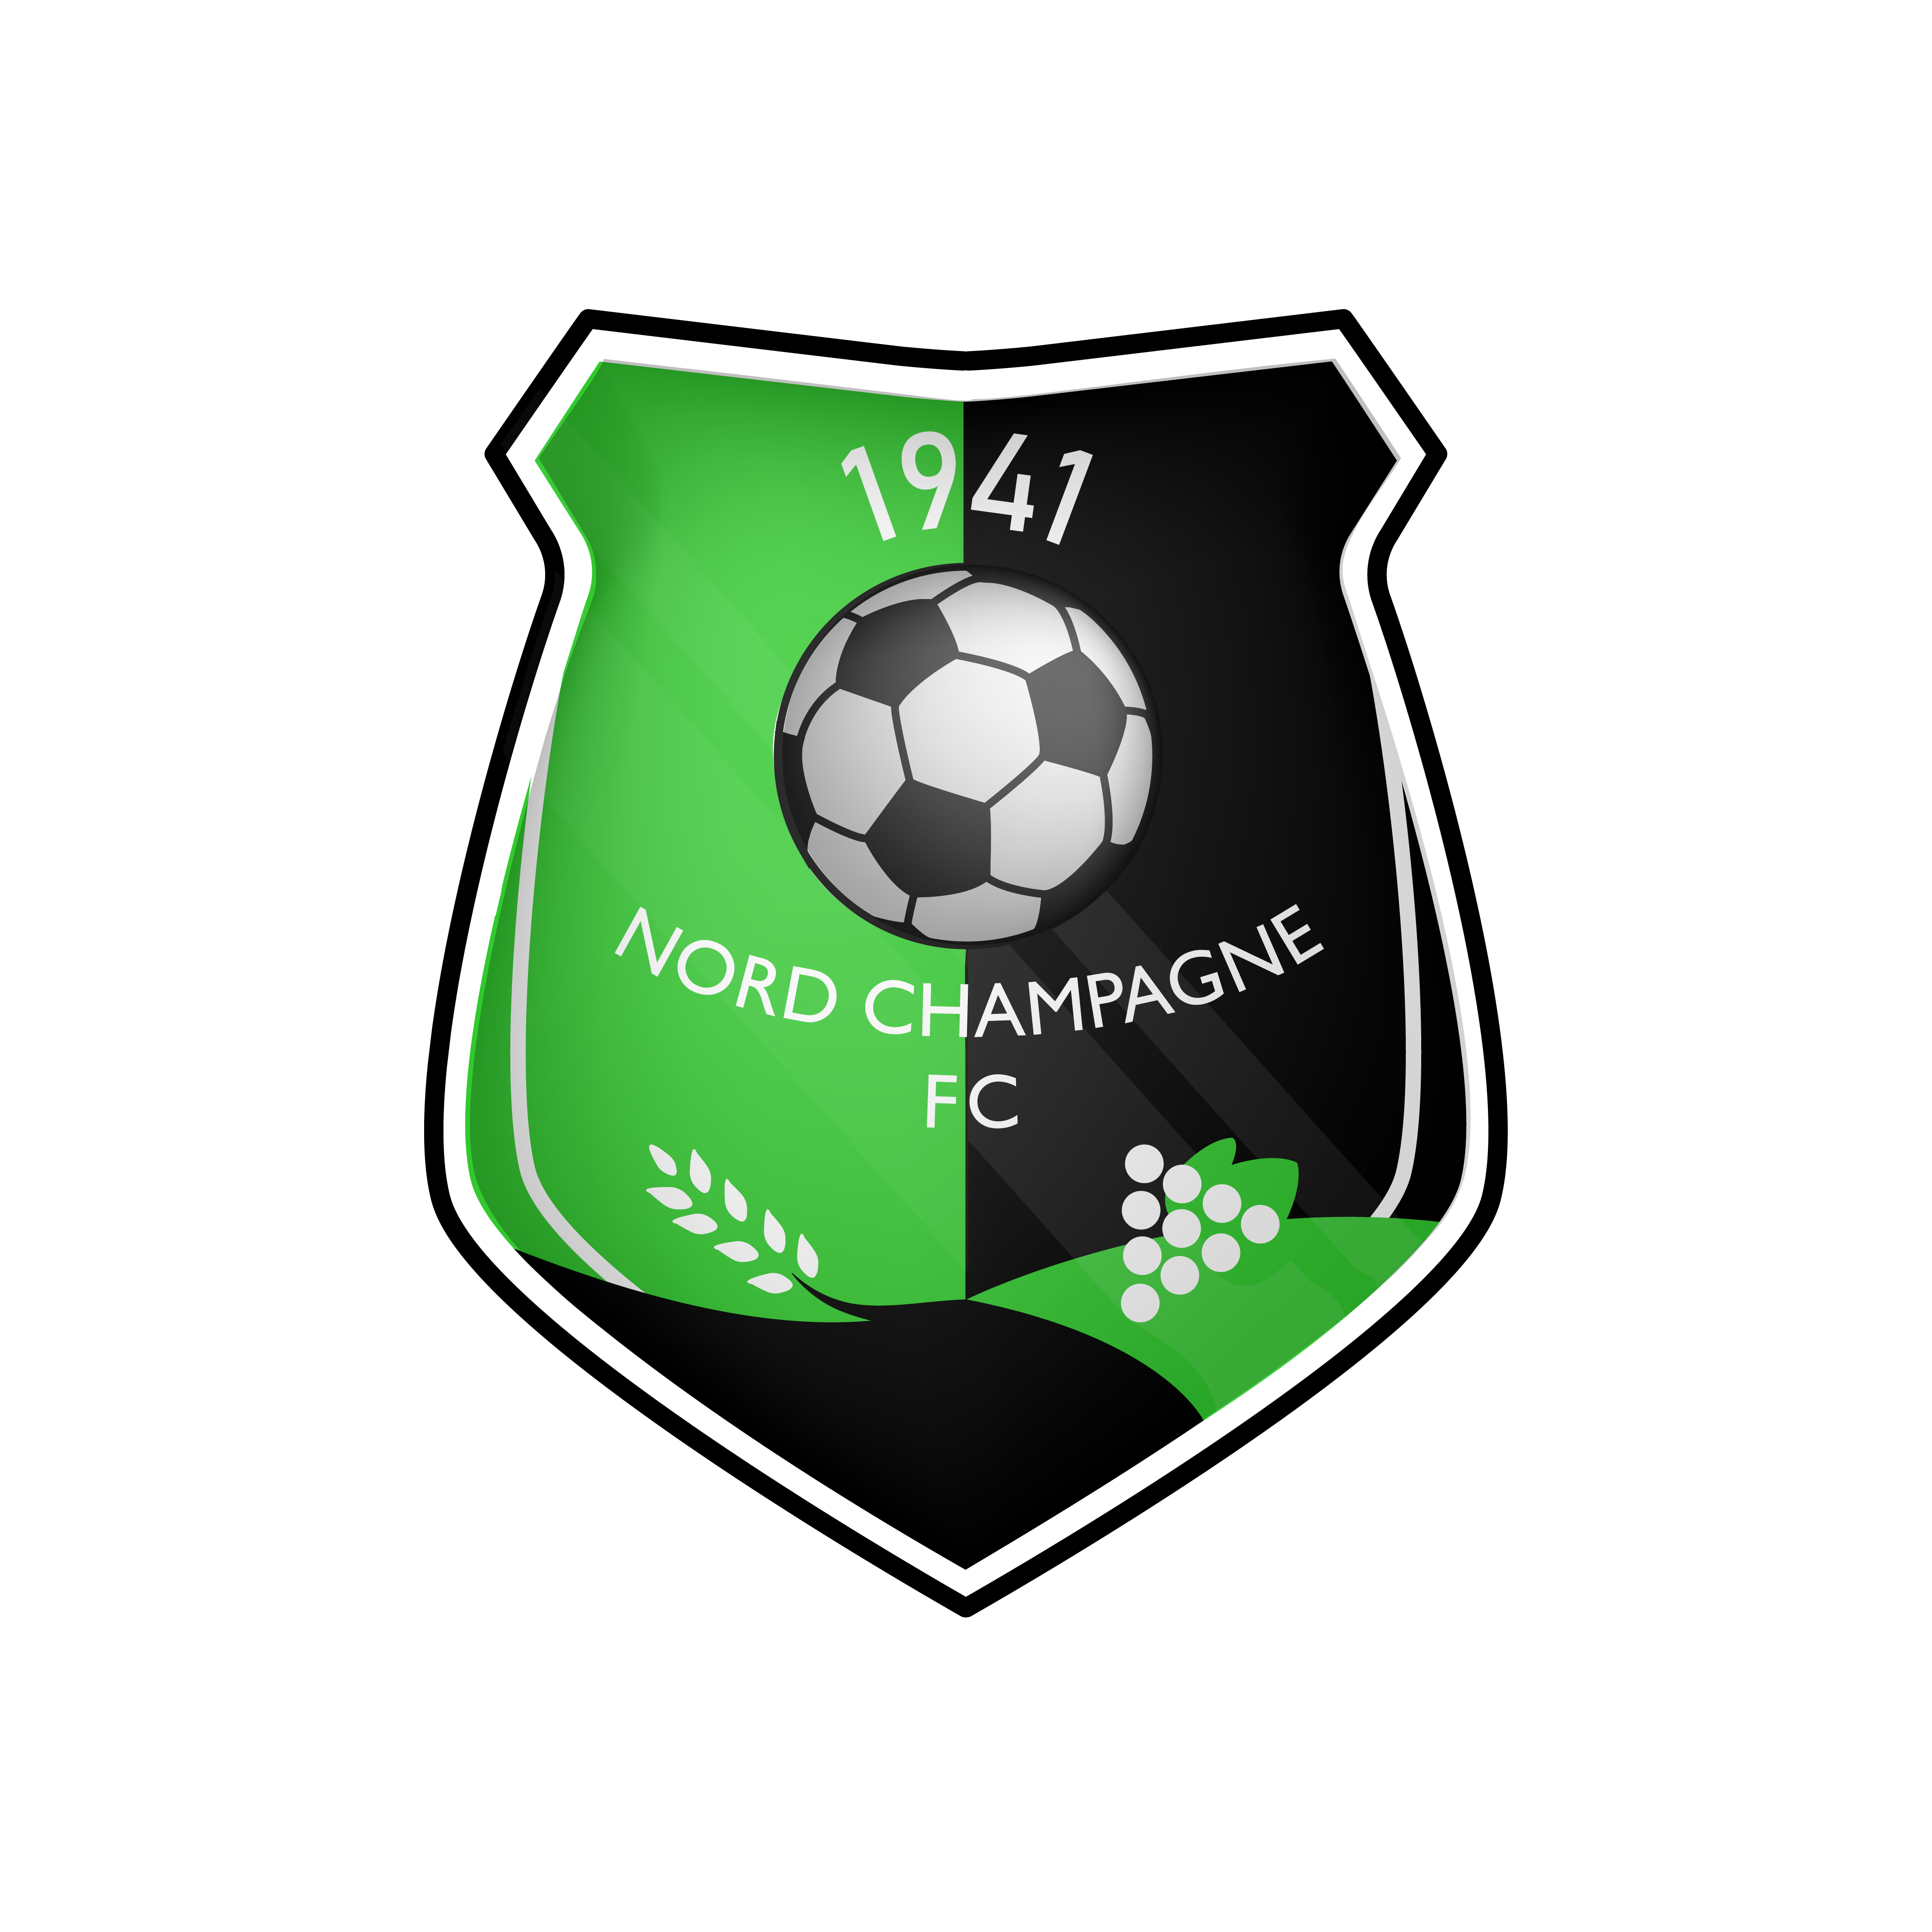 Nord Champagne FC